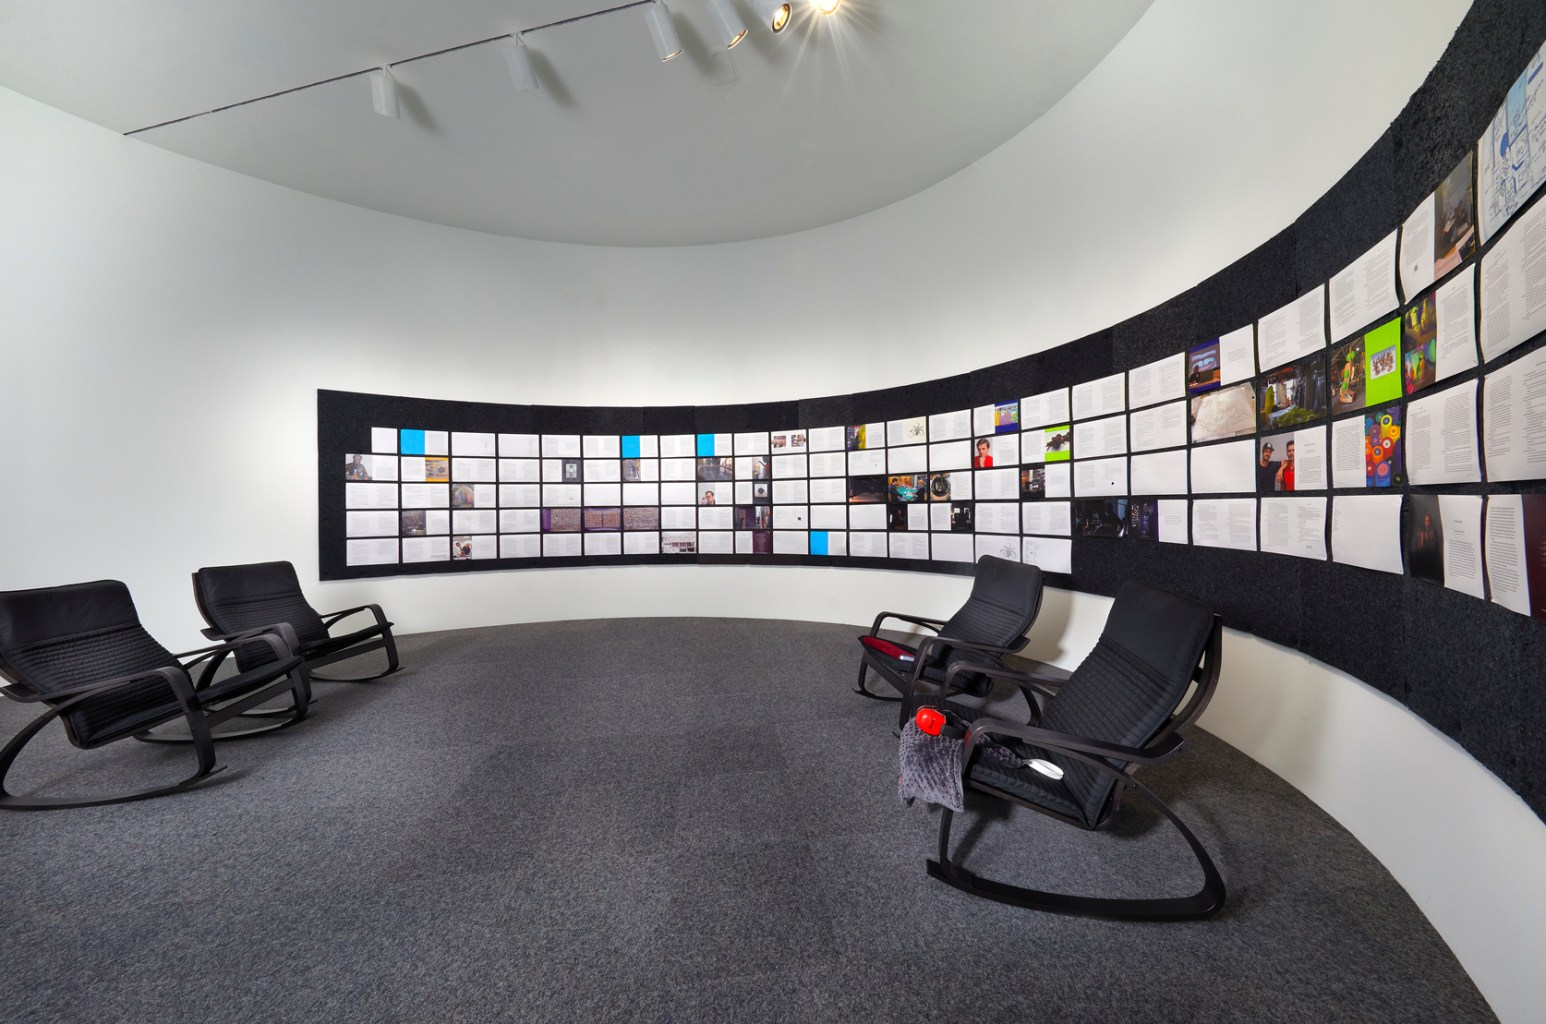 In a room with curved walls, rocking chairs are arranged in front of a grid of images.